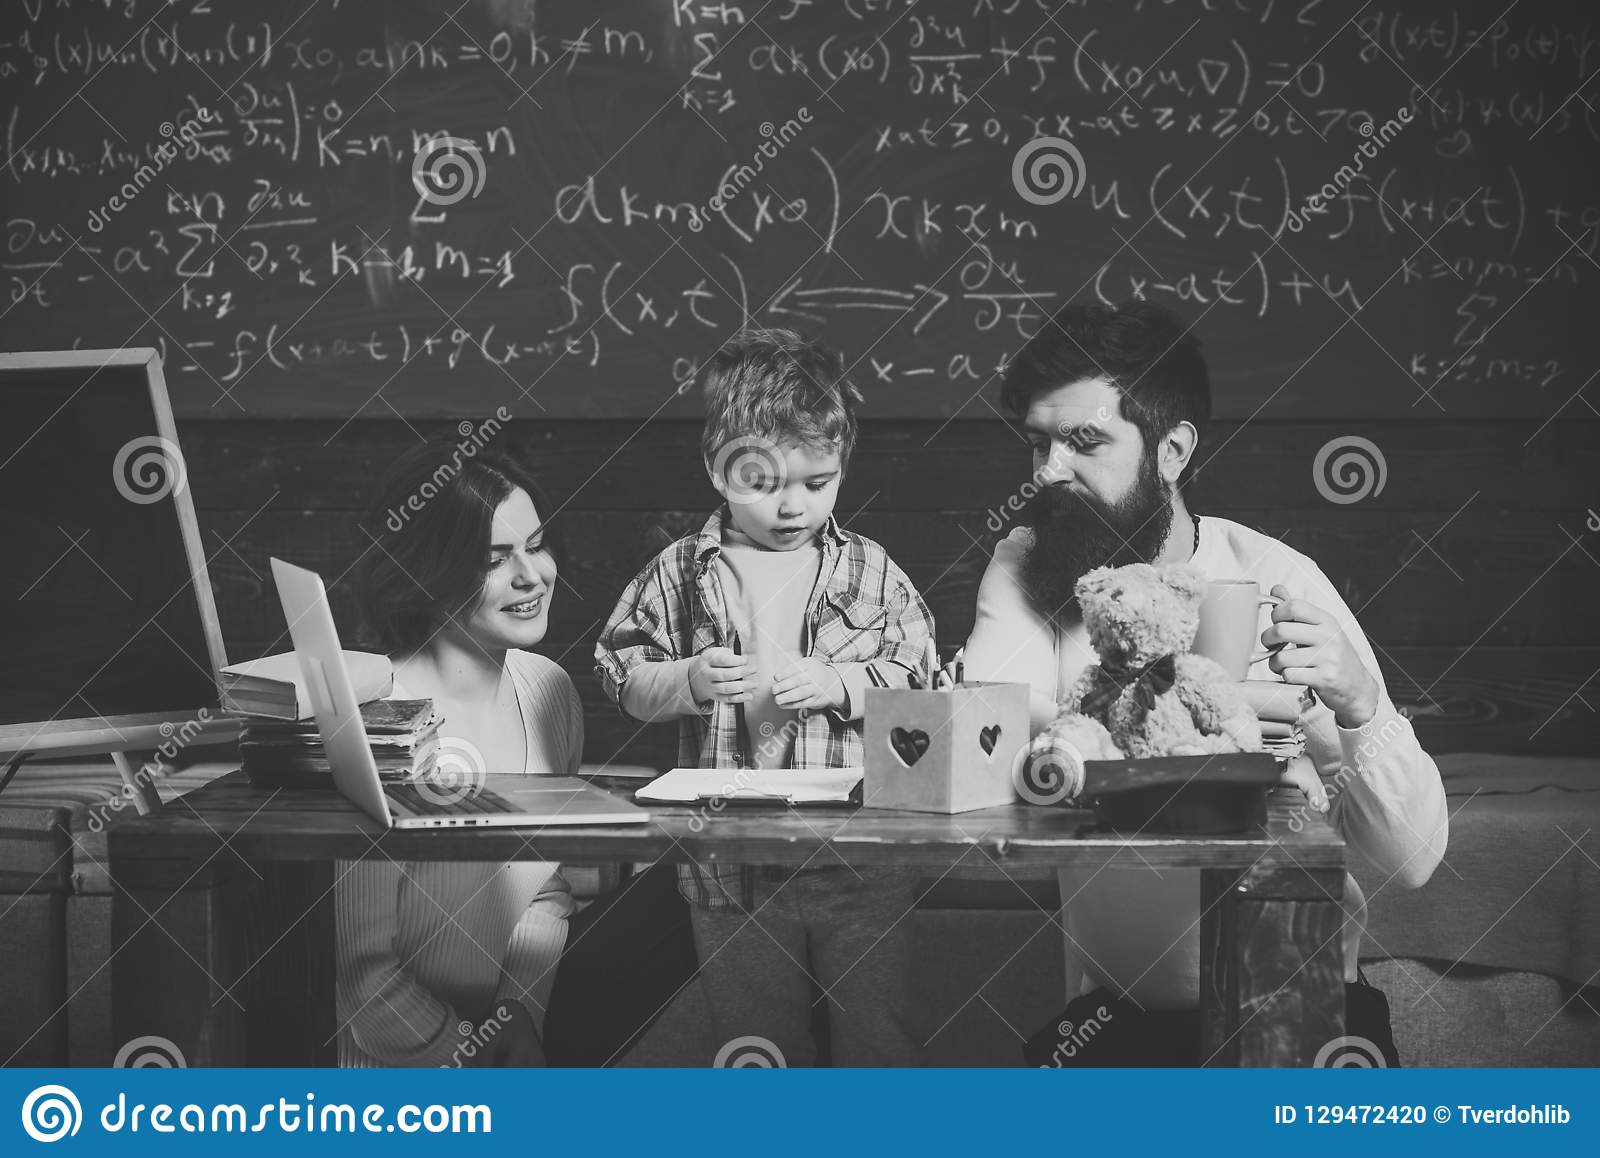 Parents teaches son, chalkboard on background. Boy listening to mom and dad with attention. Family cares about education